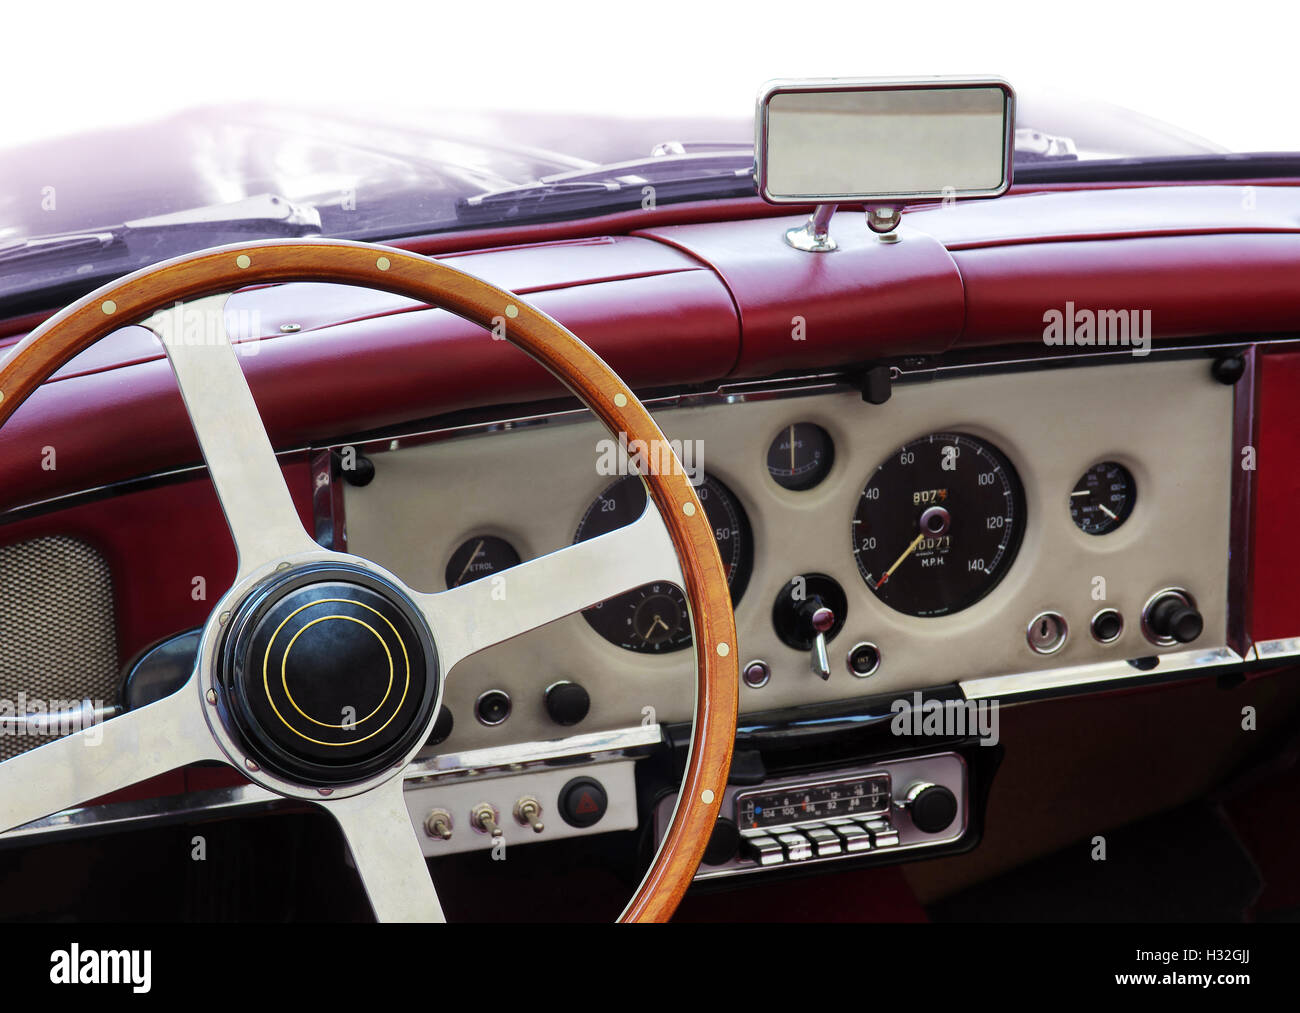 Dashboard of an old classic car with round measuring instruments and wooden steering wheel - Stock Image